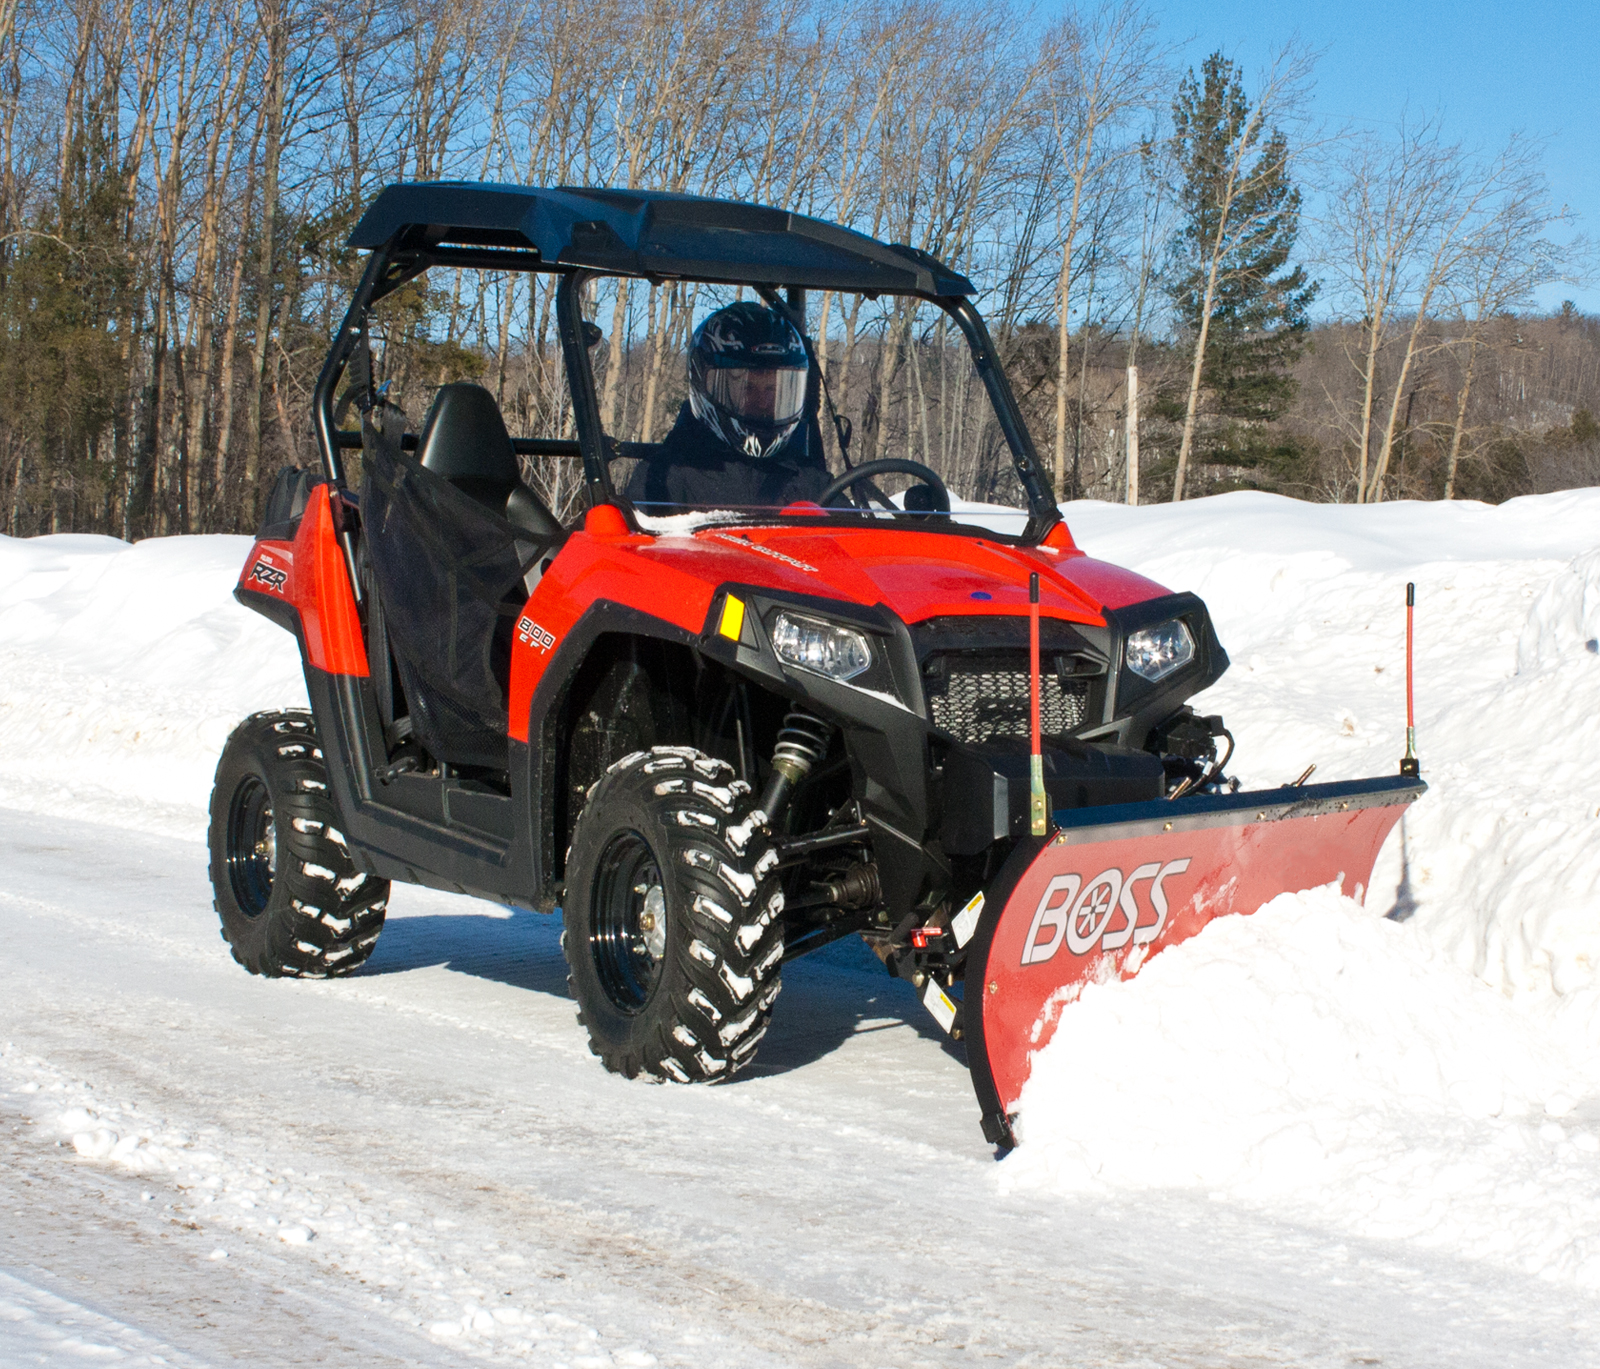 Boss Snowplow Utv Atv Equipment